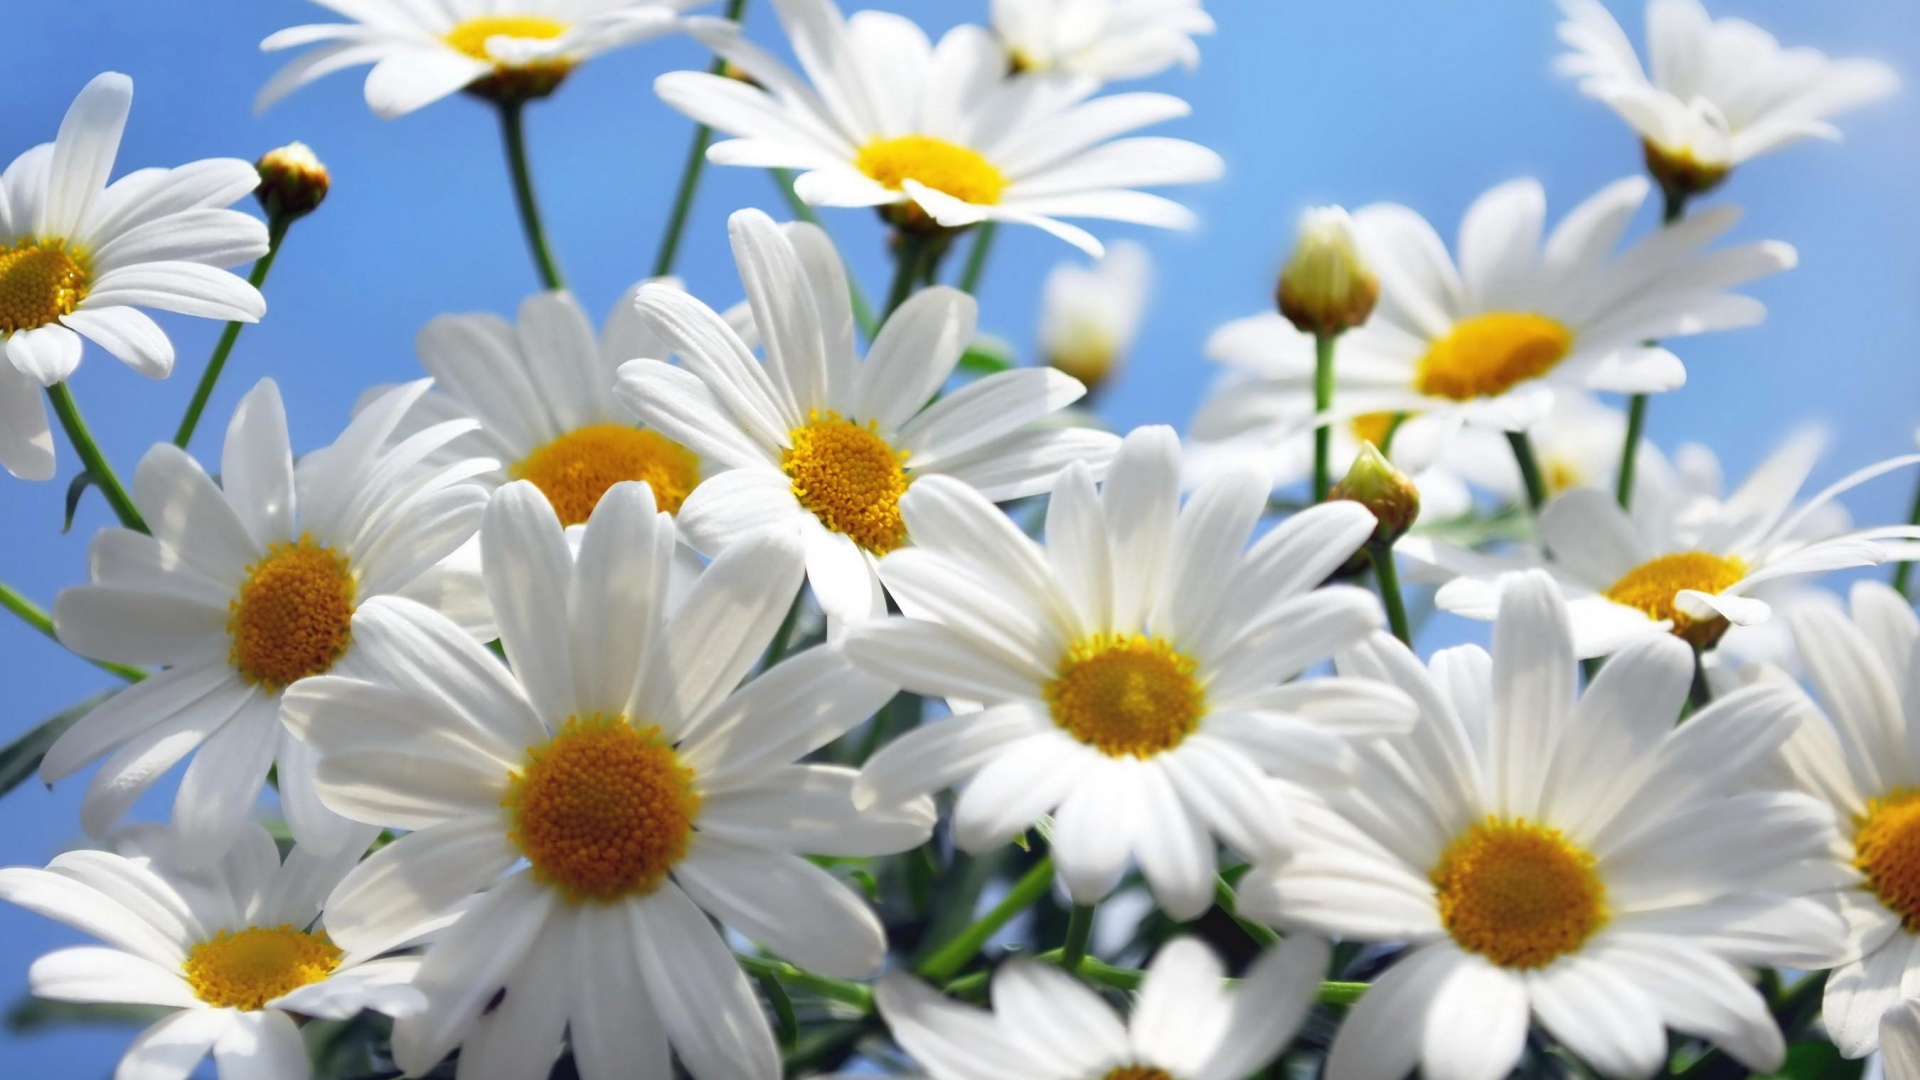 Download wallpaper 1920x1080 daisies flowers sky clouds summer daisies flowers sky izmirmasajfo Choice Image